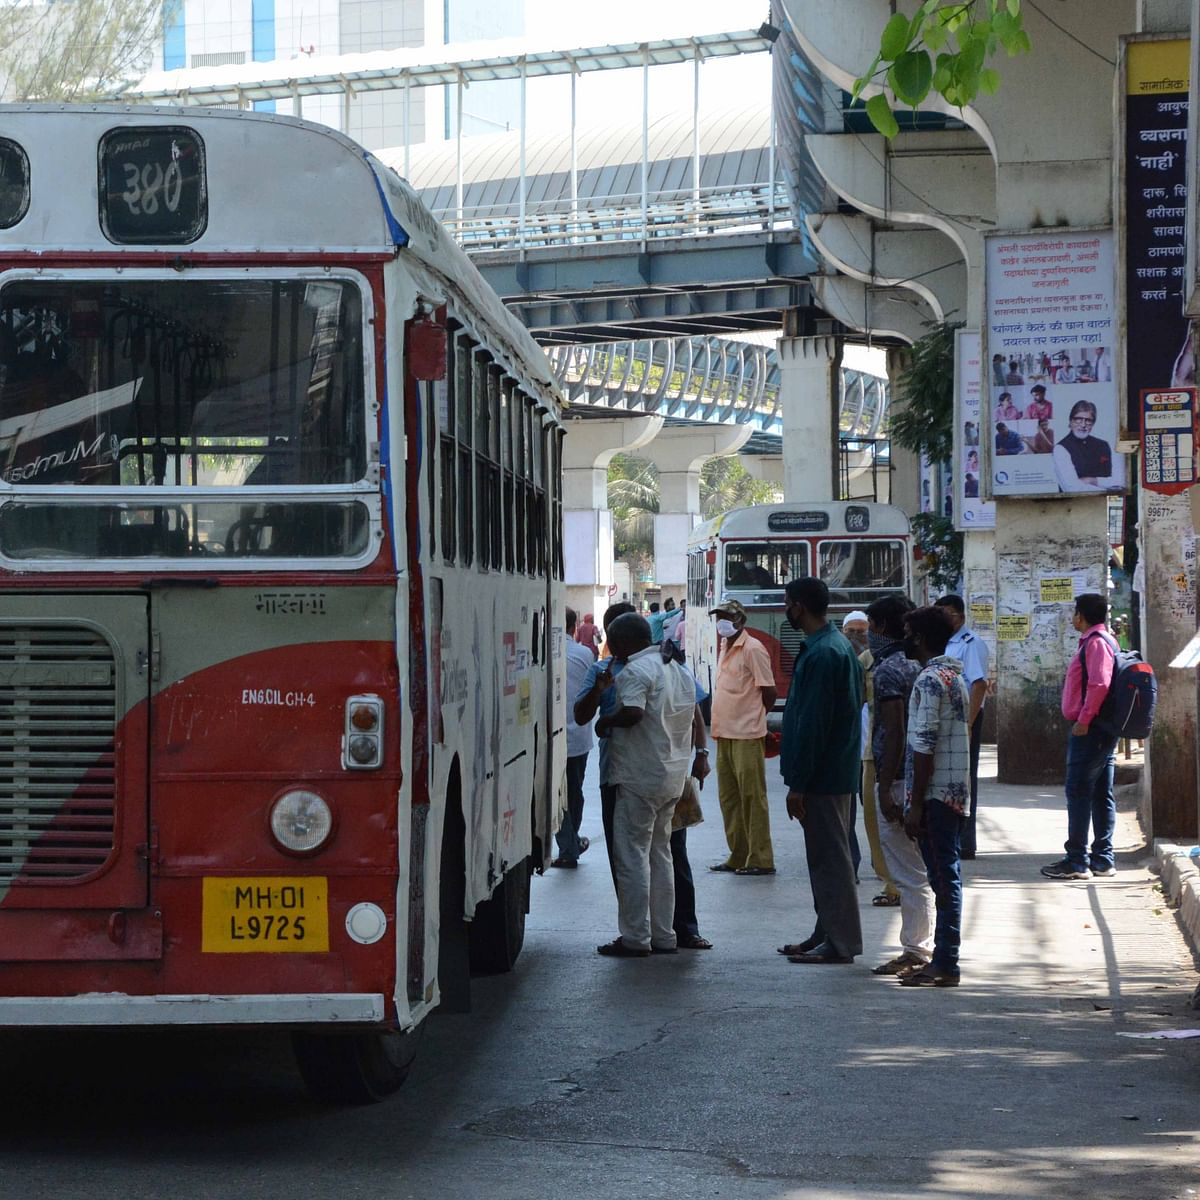 Coronavirus in Mumbai: BEST dismisses 14 drivers, conductors who failed to report for work